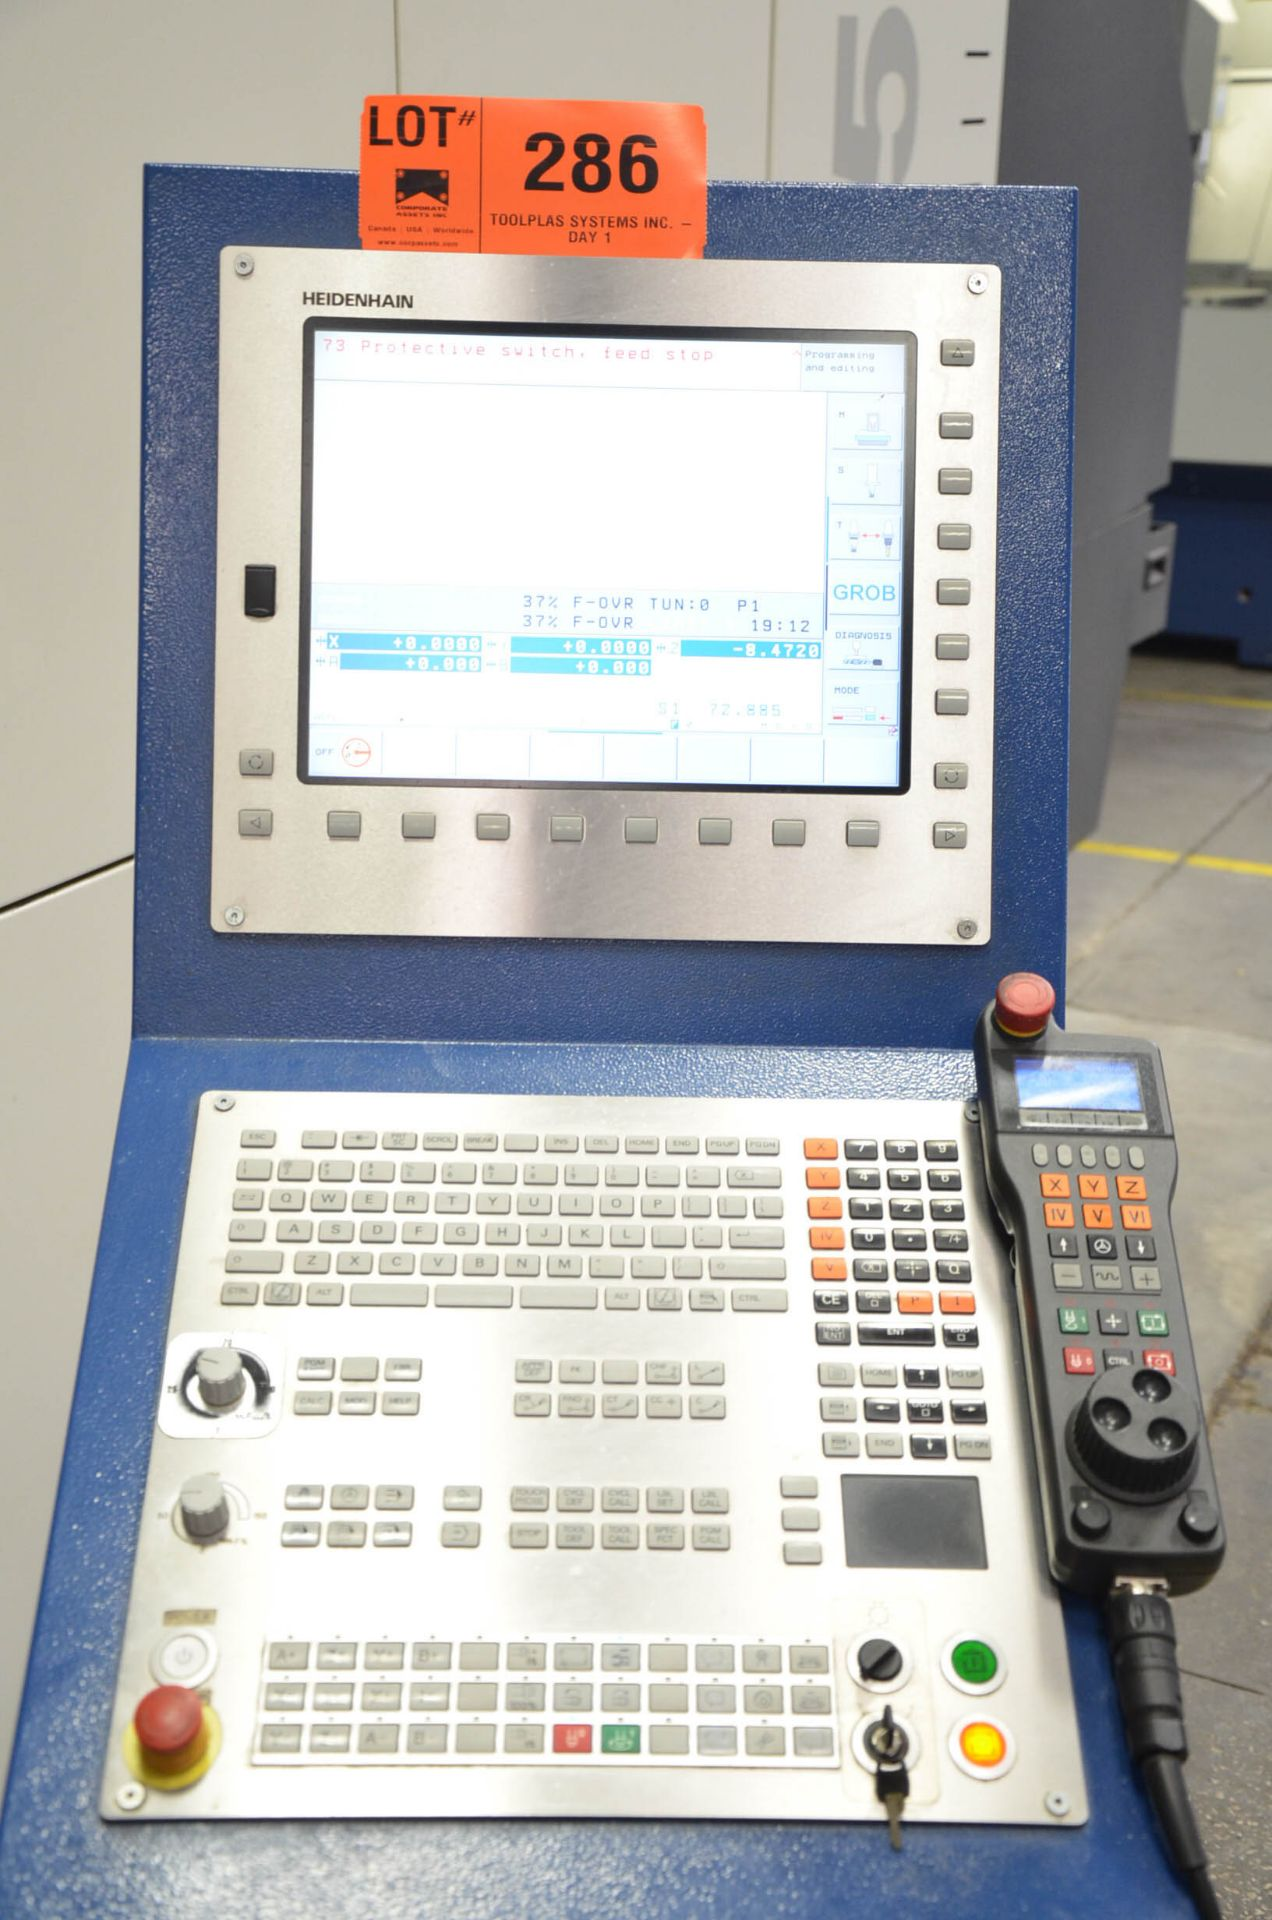 GROB (2014) G550 5-AXIS TWIN PALLET CNC MACHINING CENTER WITH HEIDENHAIN ITNC 530 CNC CONTROL, 24. - Image 11 of 13